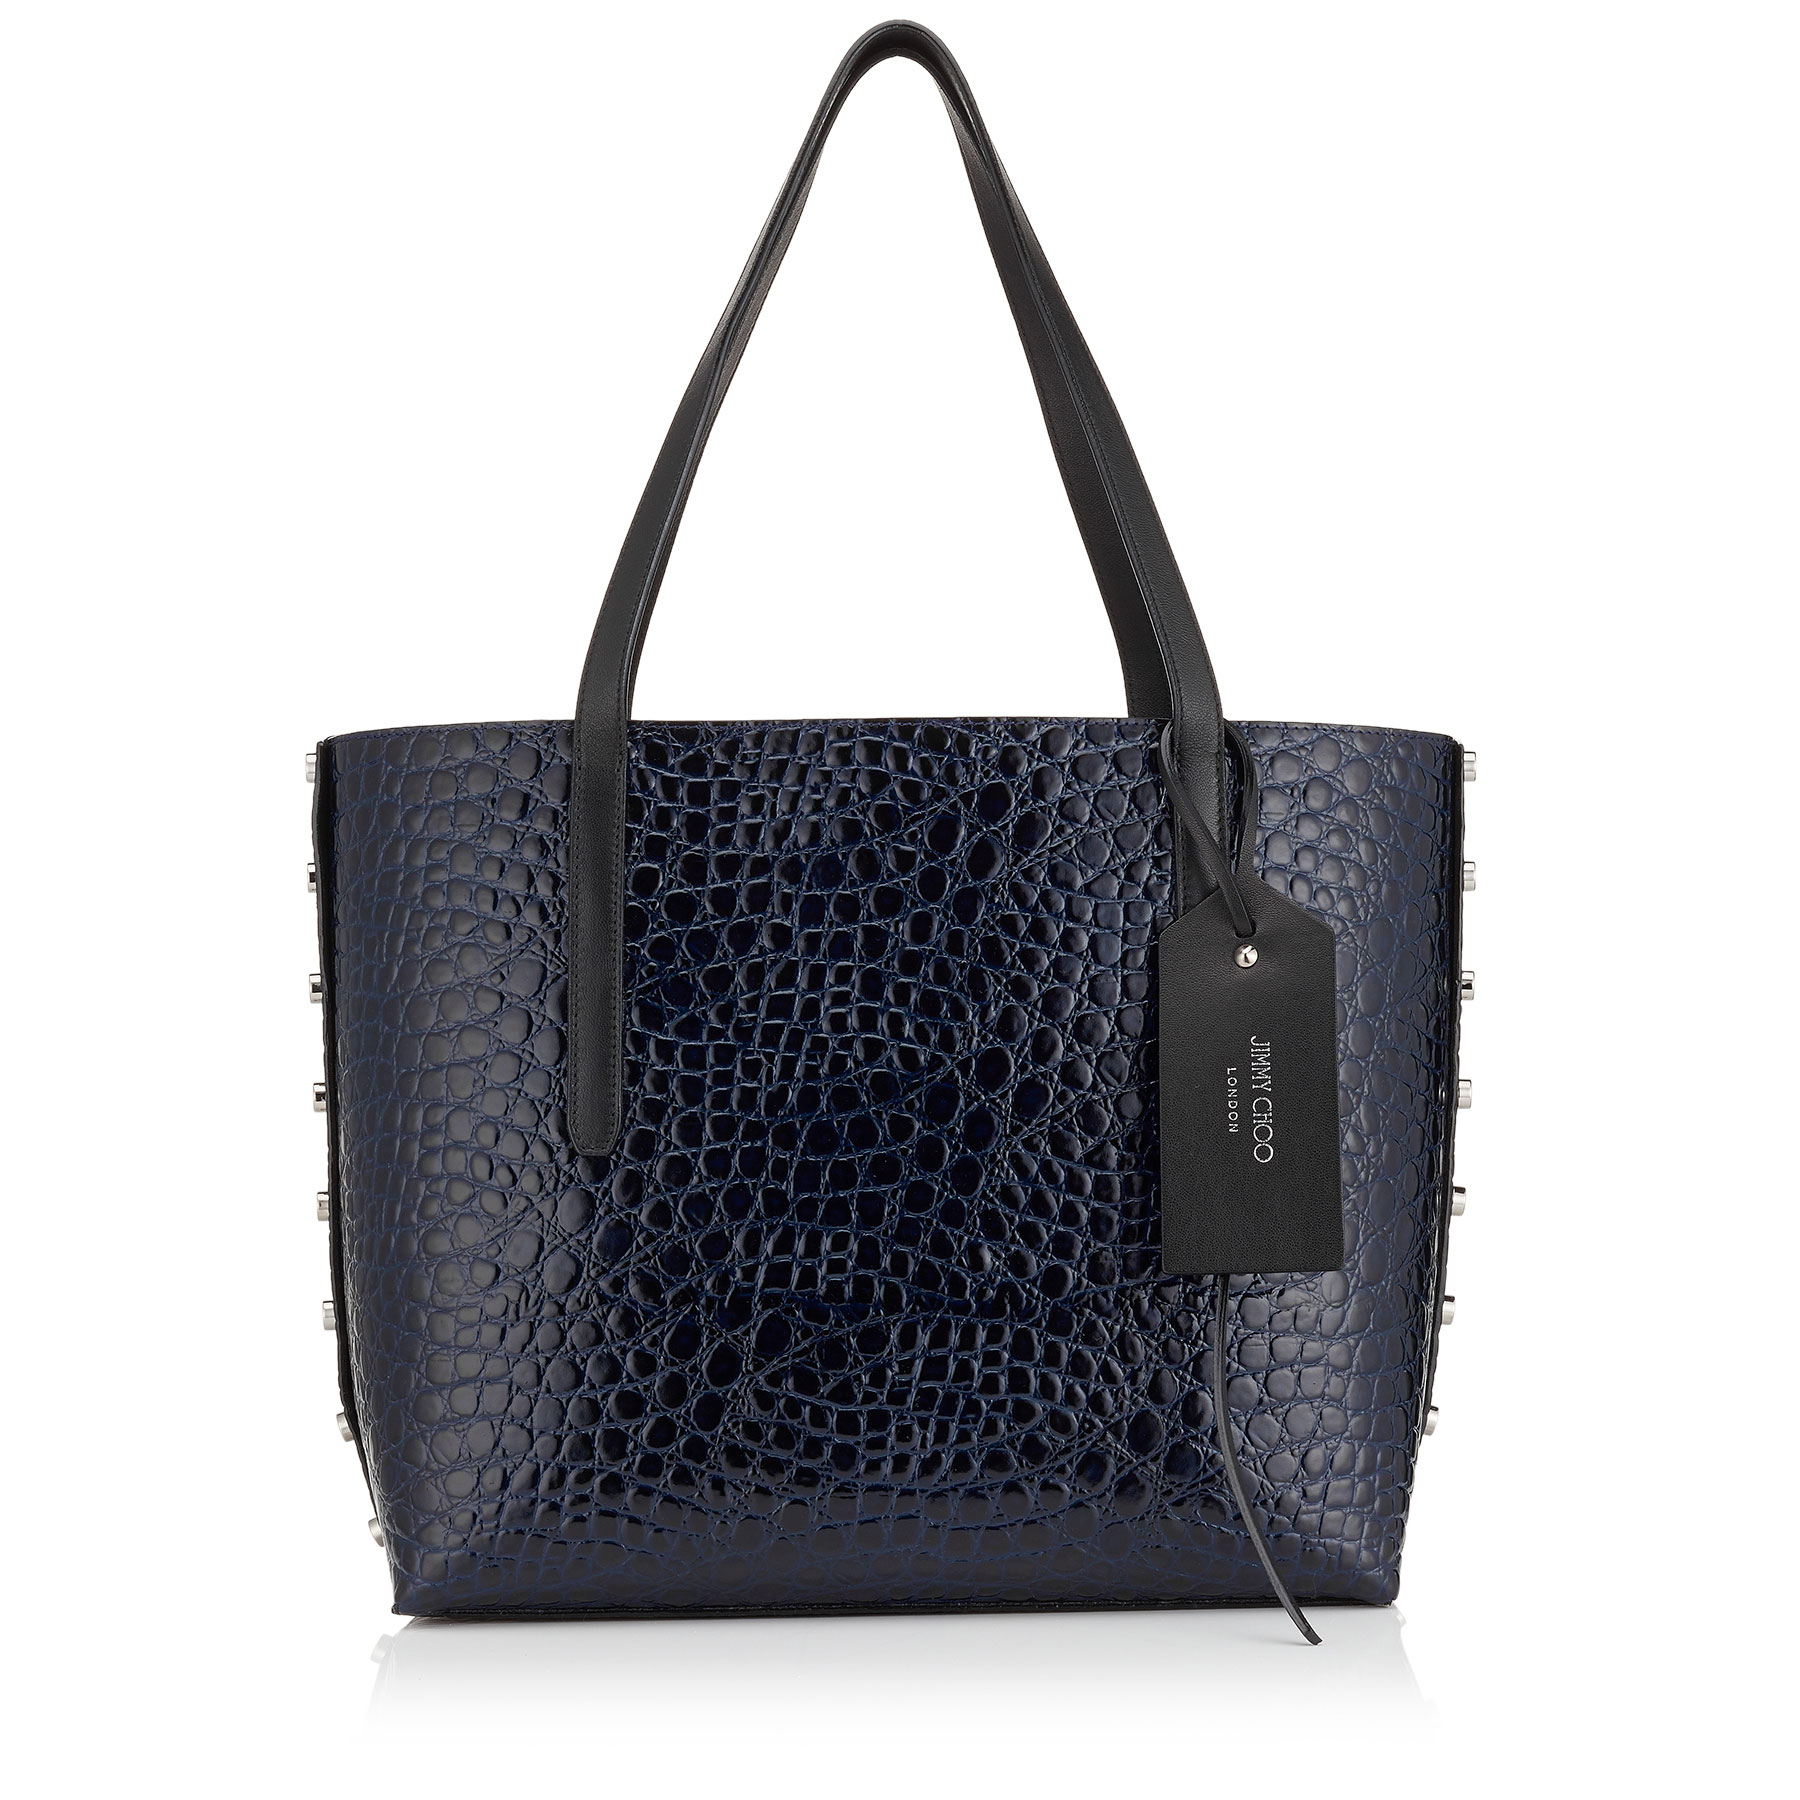 TWIST EAST WEST Navy Mock Croc and Black Grainy Leather Tote Bag